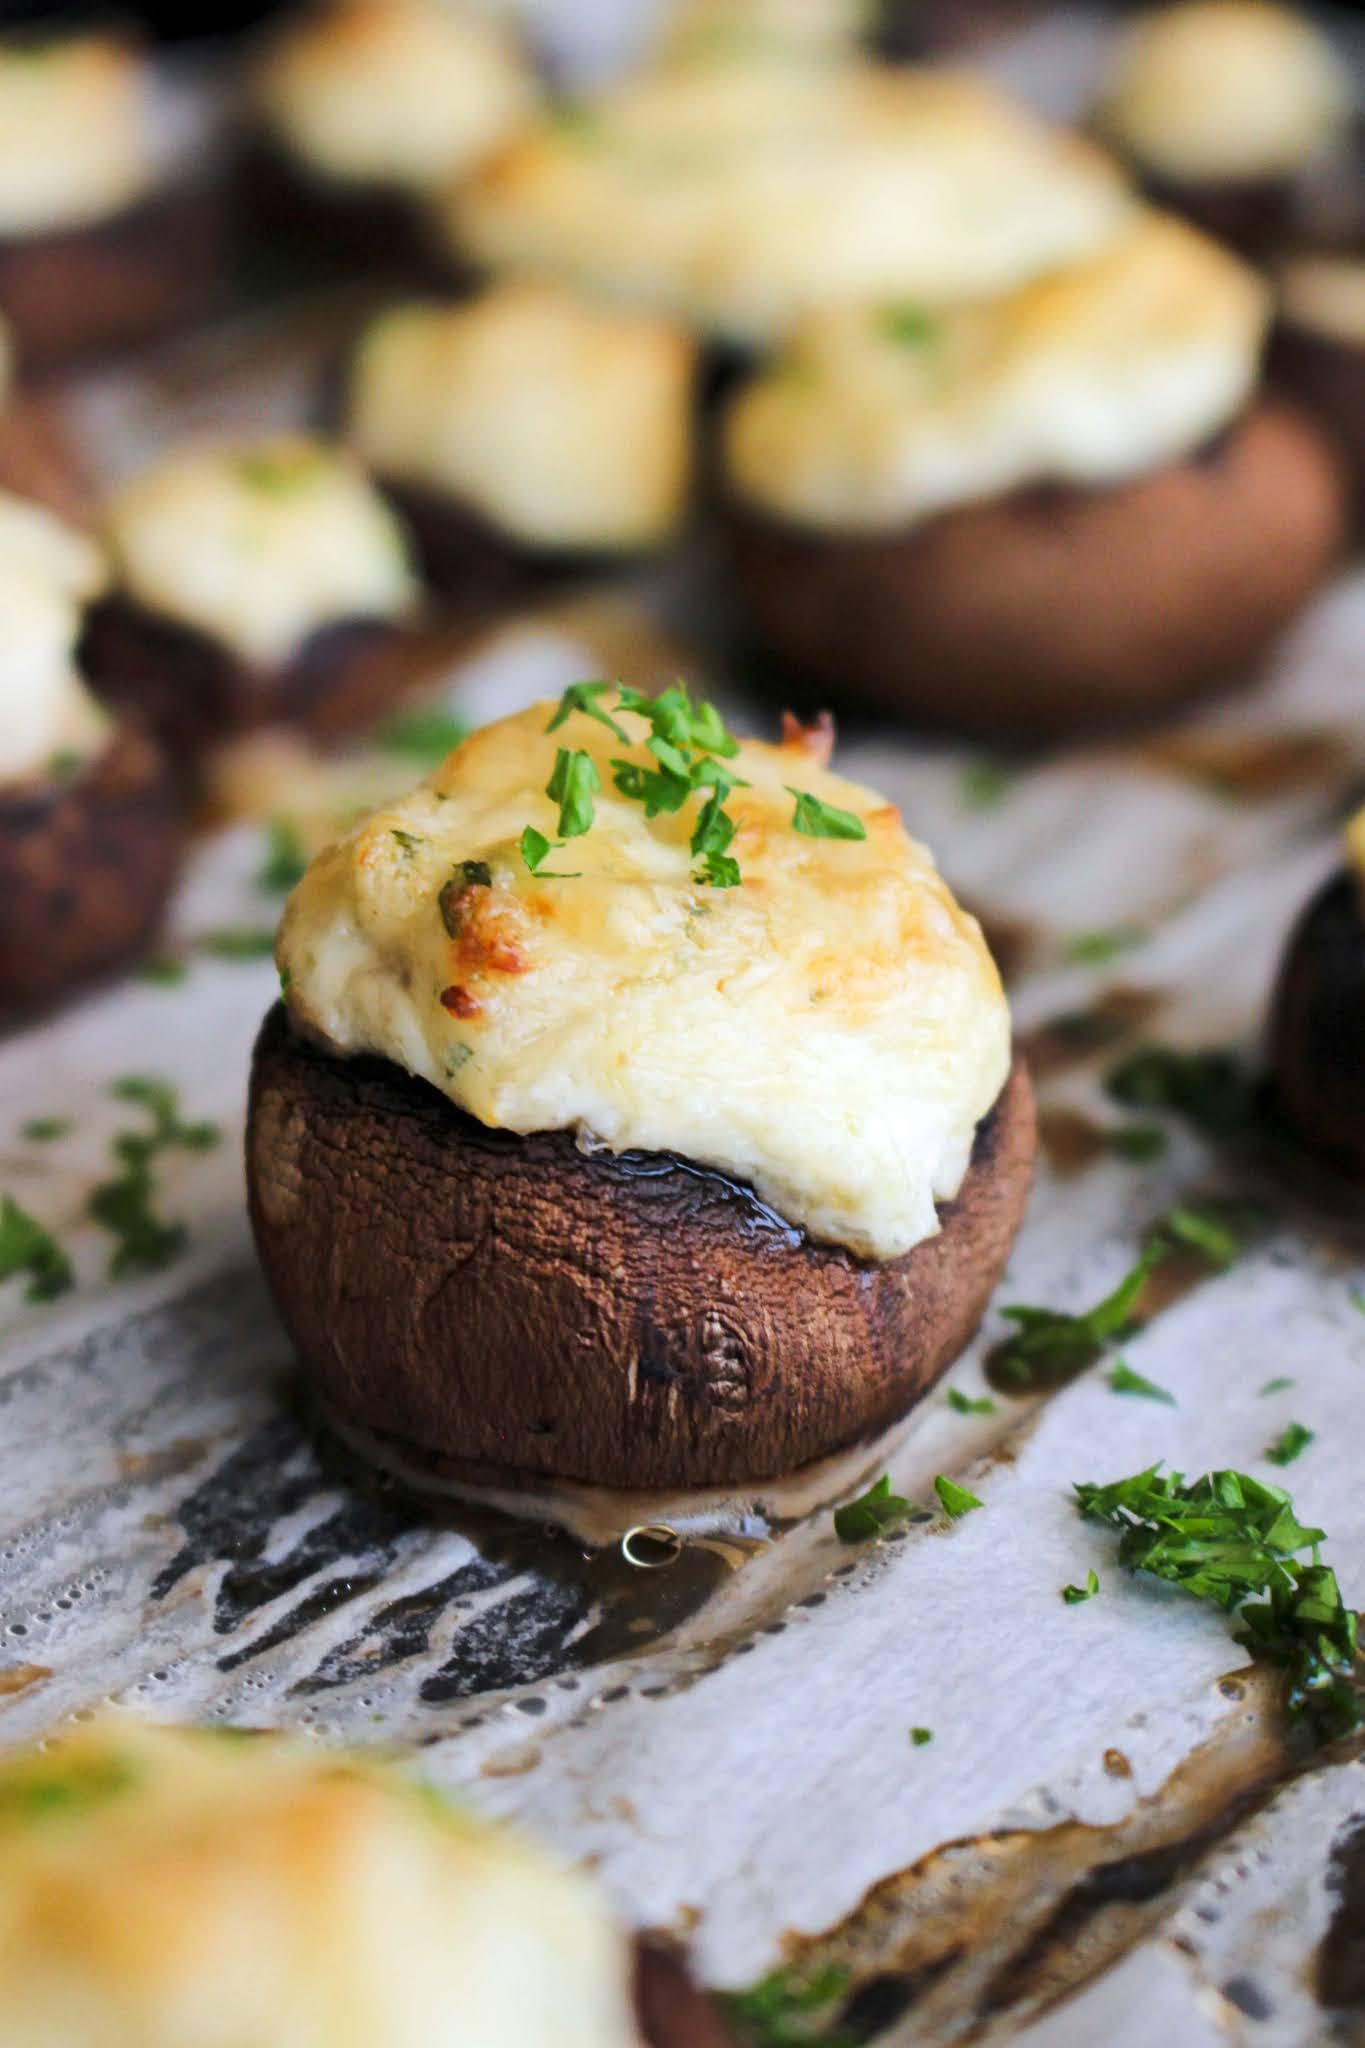 These are the best Crab and Cream Cheese Stuffed Mushrooms! They are elegant, yet easy to make and perfect for any occasion. Try them on Thanksgiving or Christmas! #stuffedmushrooms #crab #appetizer